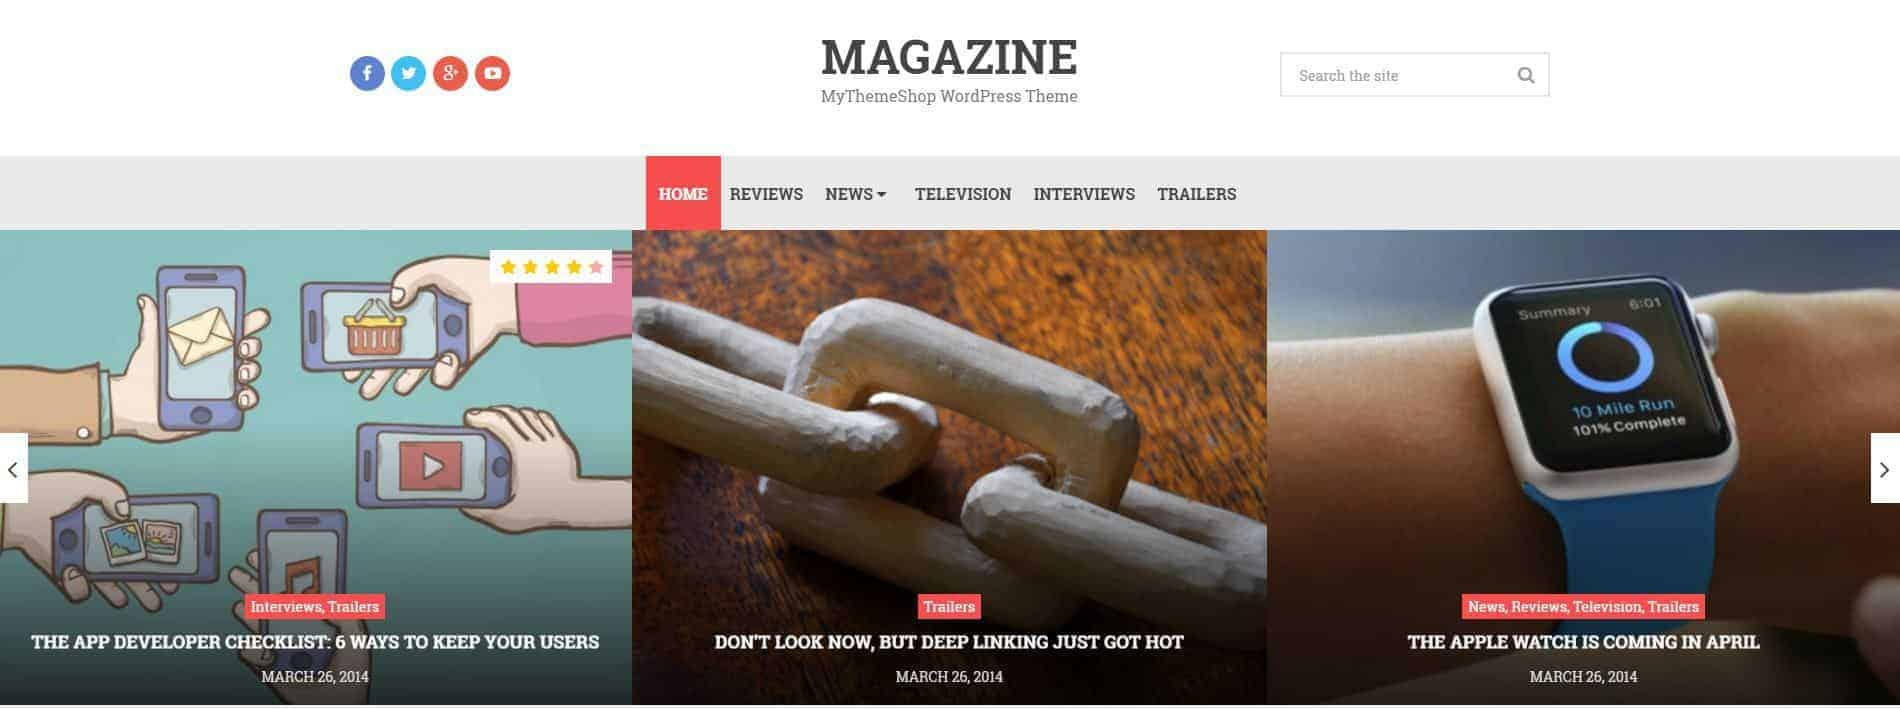 Magazine MyThemeShop WordPress Theme